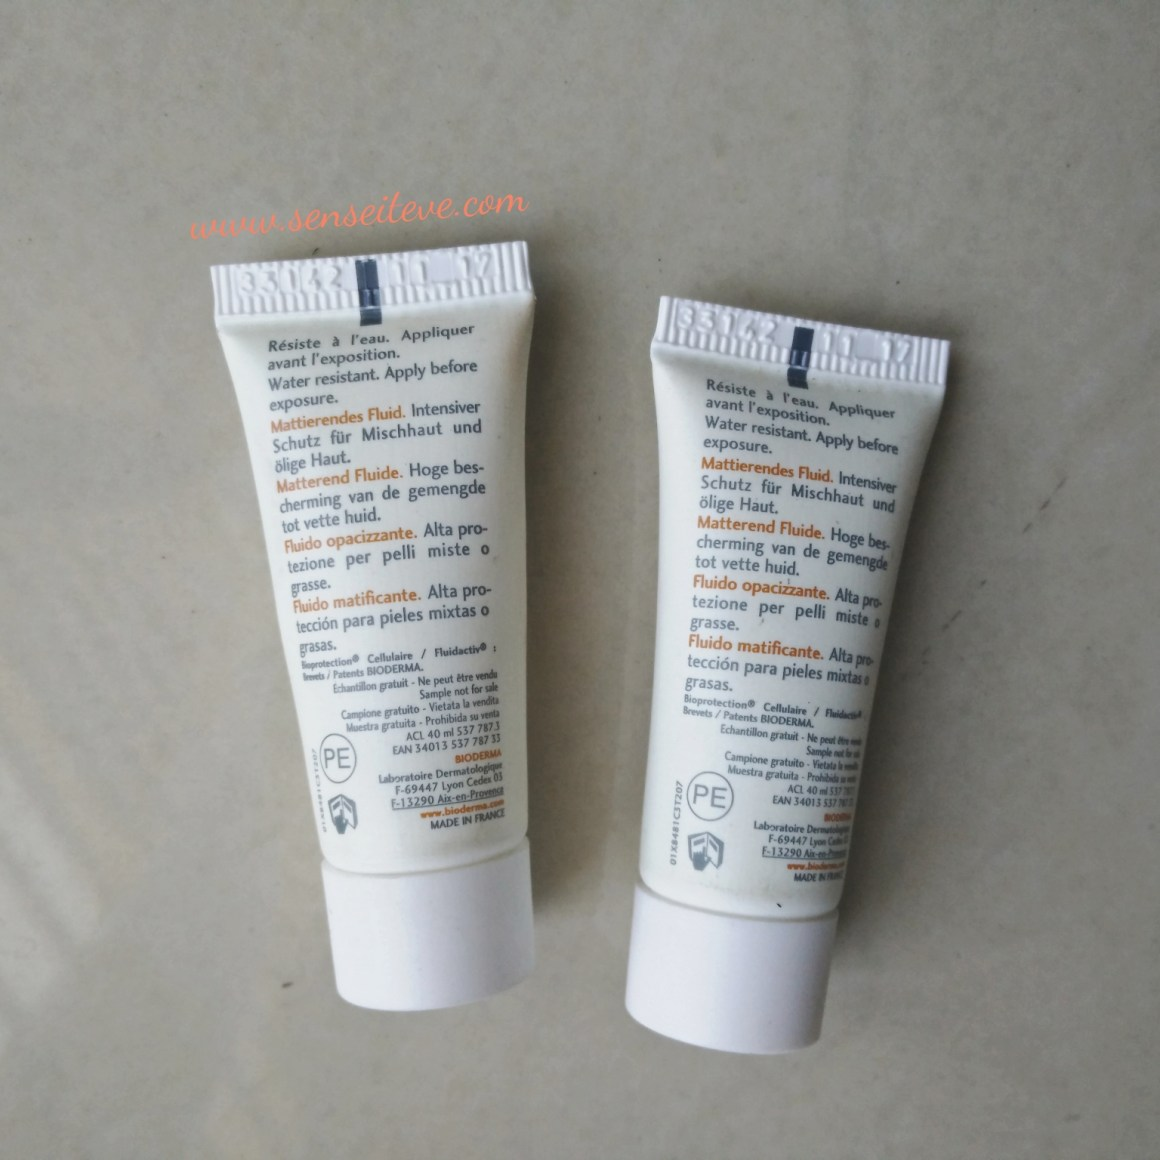 Bioderma Photoderm AKN Mat Sunscreen SPF 30 Price in India